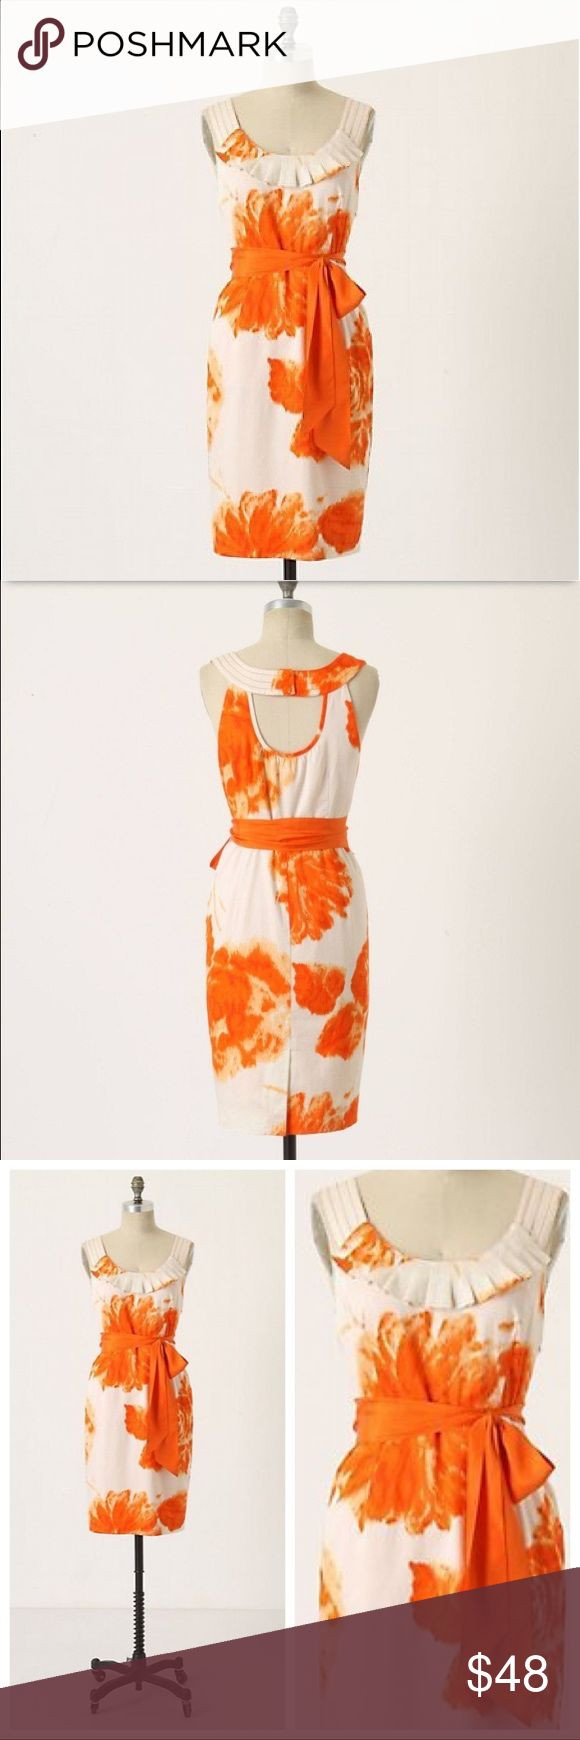 Moulinette Soeurs Orange Blossom Dress - No Sash Floral, open back sheath Anthropologie dress by Moulinette Soeurs. Features orange floral watercolor print on off white dress; scoop neck with ruffle bib; cut out back detail; pencil skirt with pockets; hidden side zip; 2 flower buttons on back neck; fully lined w/lace hem slip; Shell 100% cotton; lining 100% Acetate; back slit. NO SASH included but belt loops are still attached to add your own sash. See last photo. Approx. flat measurements…